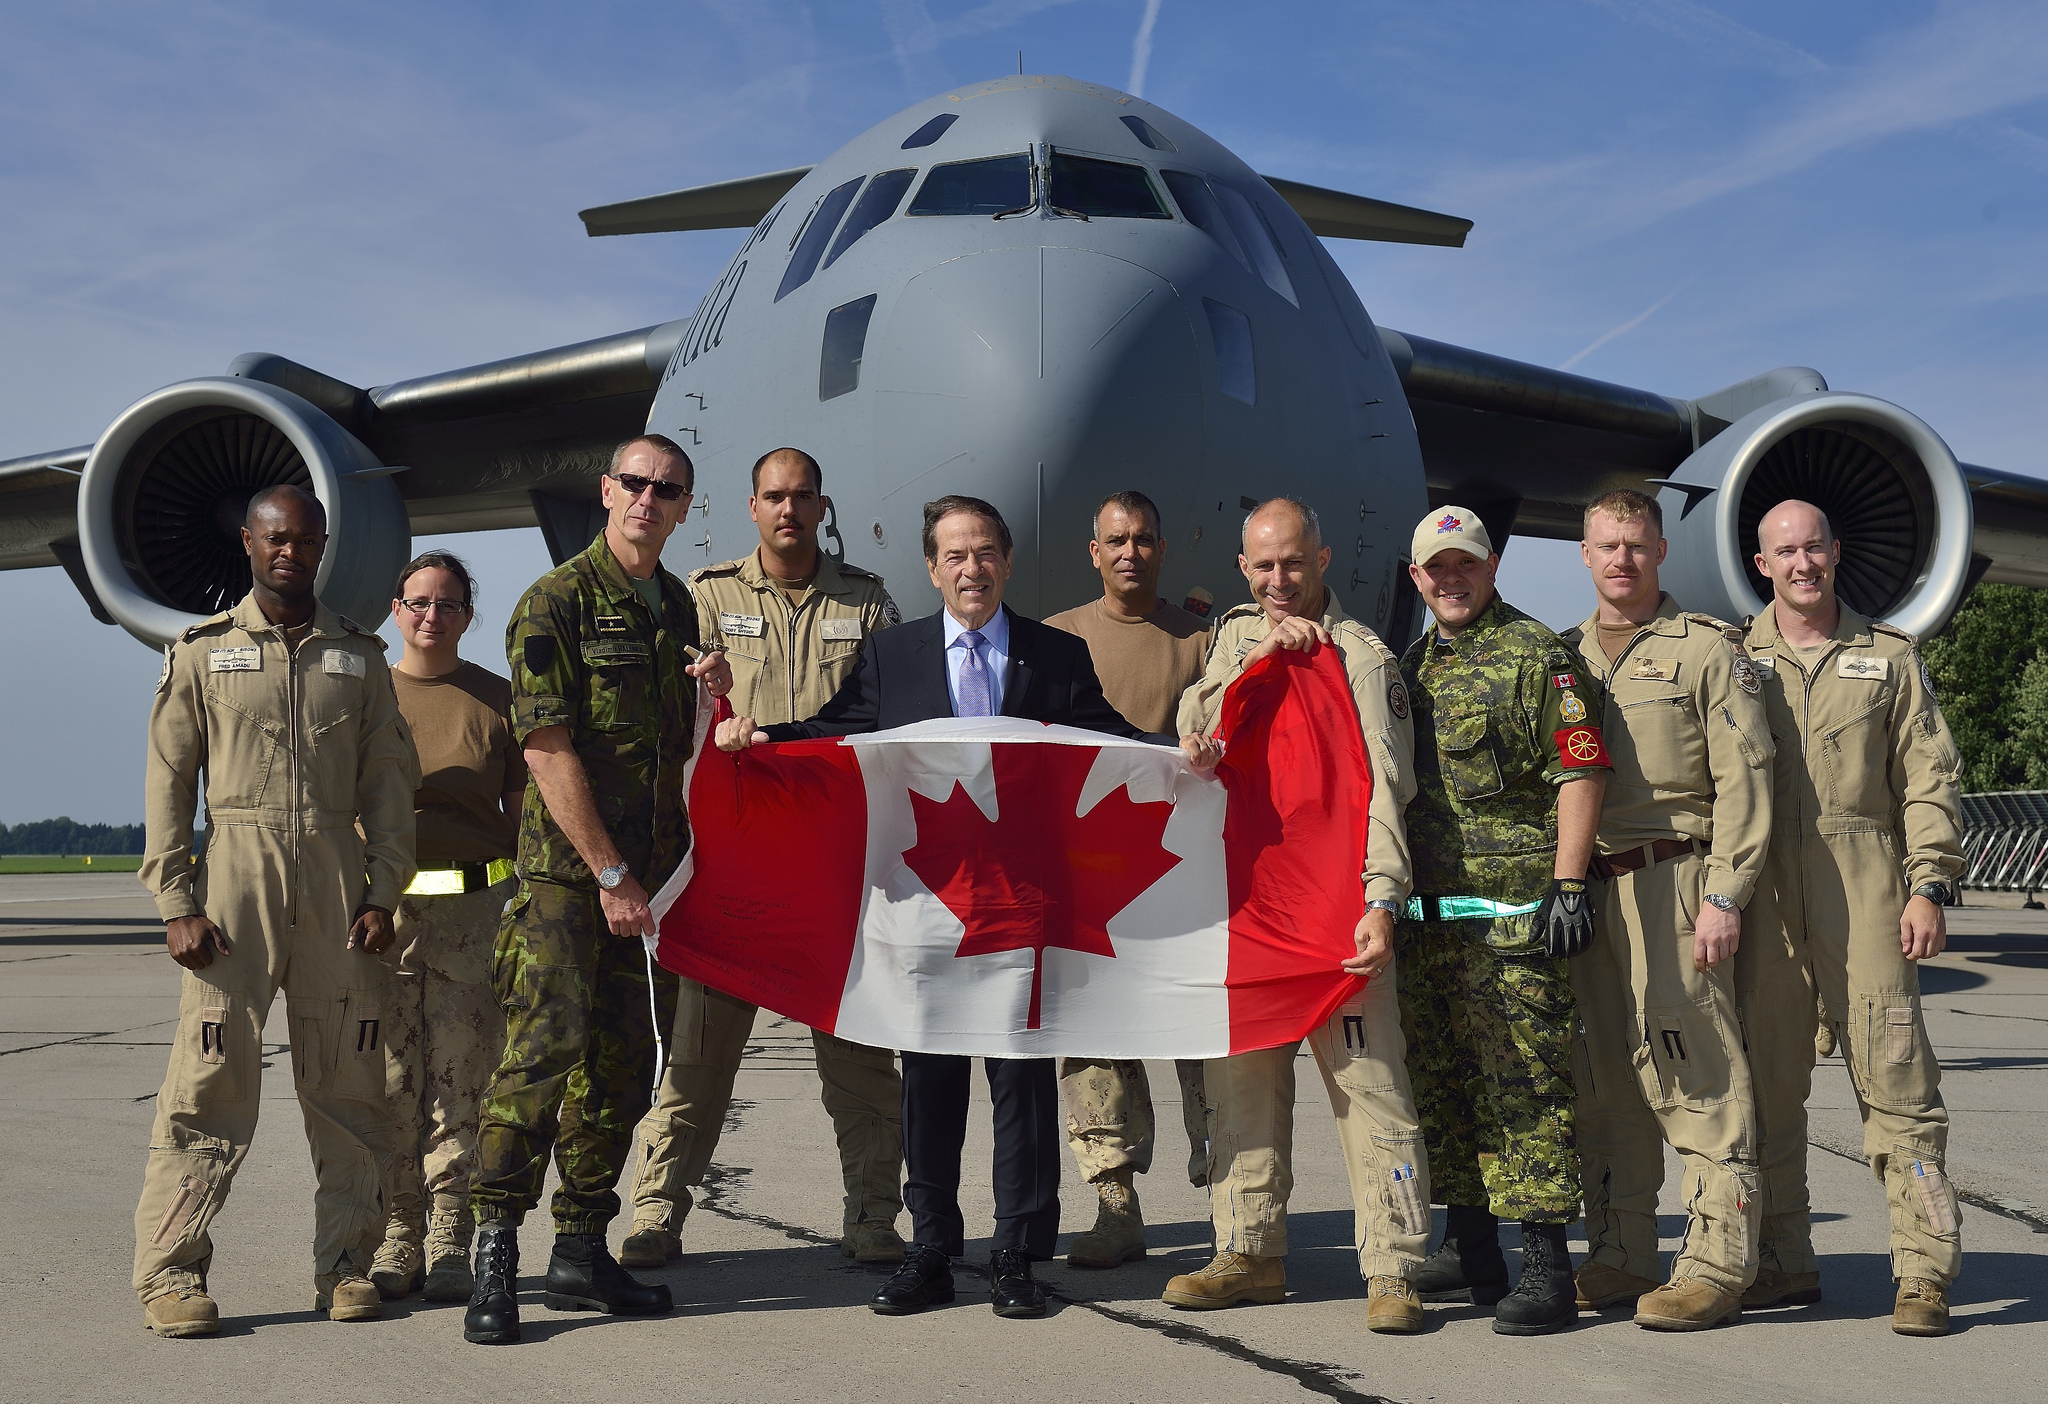 The Government of Canada announced that it will provide strategic airlift support for military supplies to Iraq from the Czech Republic. Under Operation IMPACT, the Canadian Air Task Force Iraq will begin operating from the Czech Republic, delivering Eastern European small-arms ammunition to Iraq to assist the Iraqi security forces protect civilians from the terrorist threat presented by the Islamic State of Iraq and the Levant (ISIL). Canadian Forces Photos / Flickr.